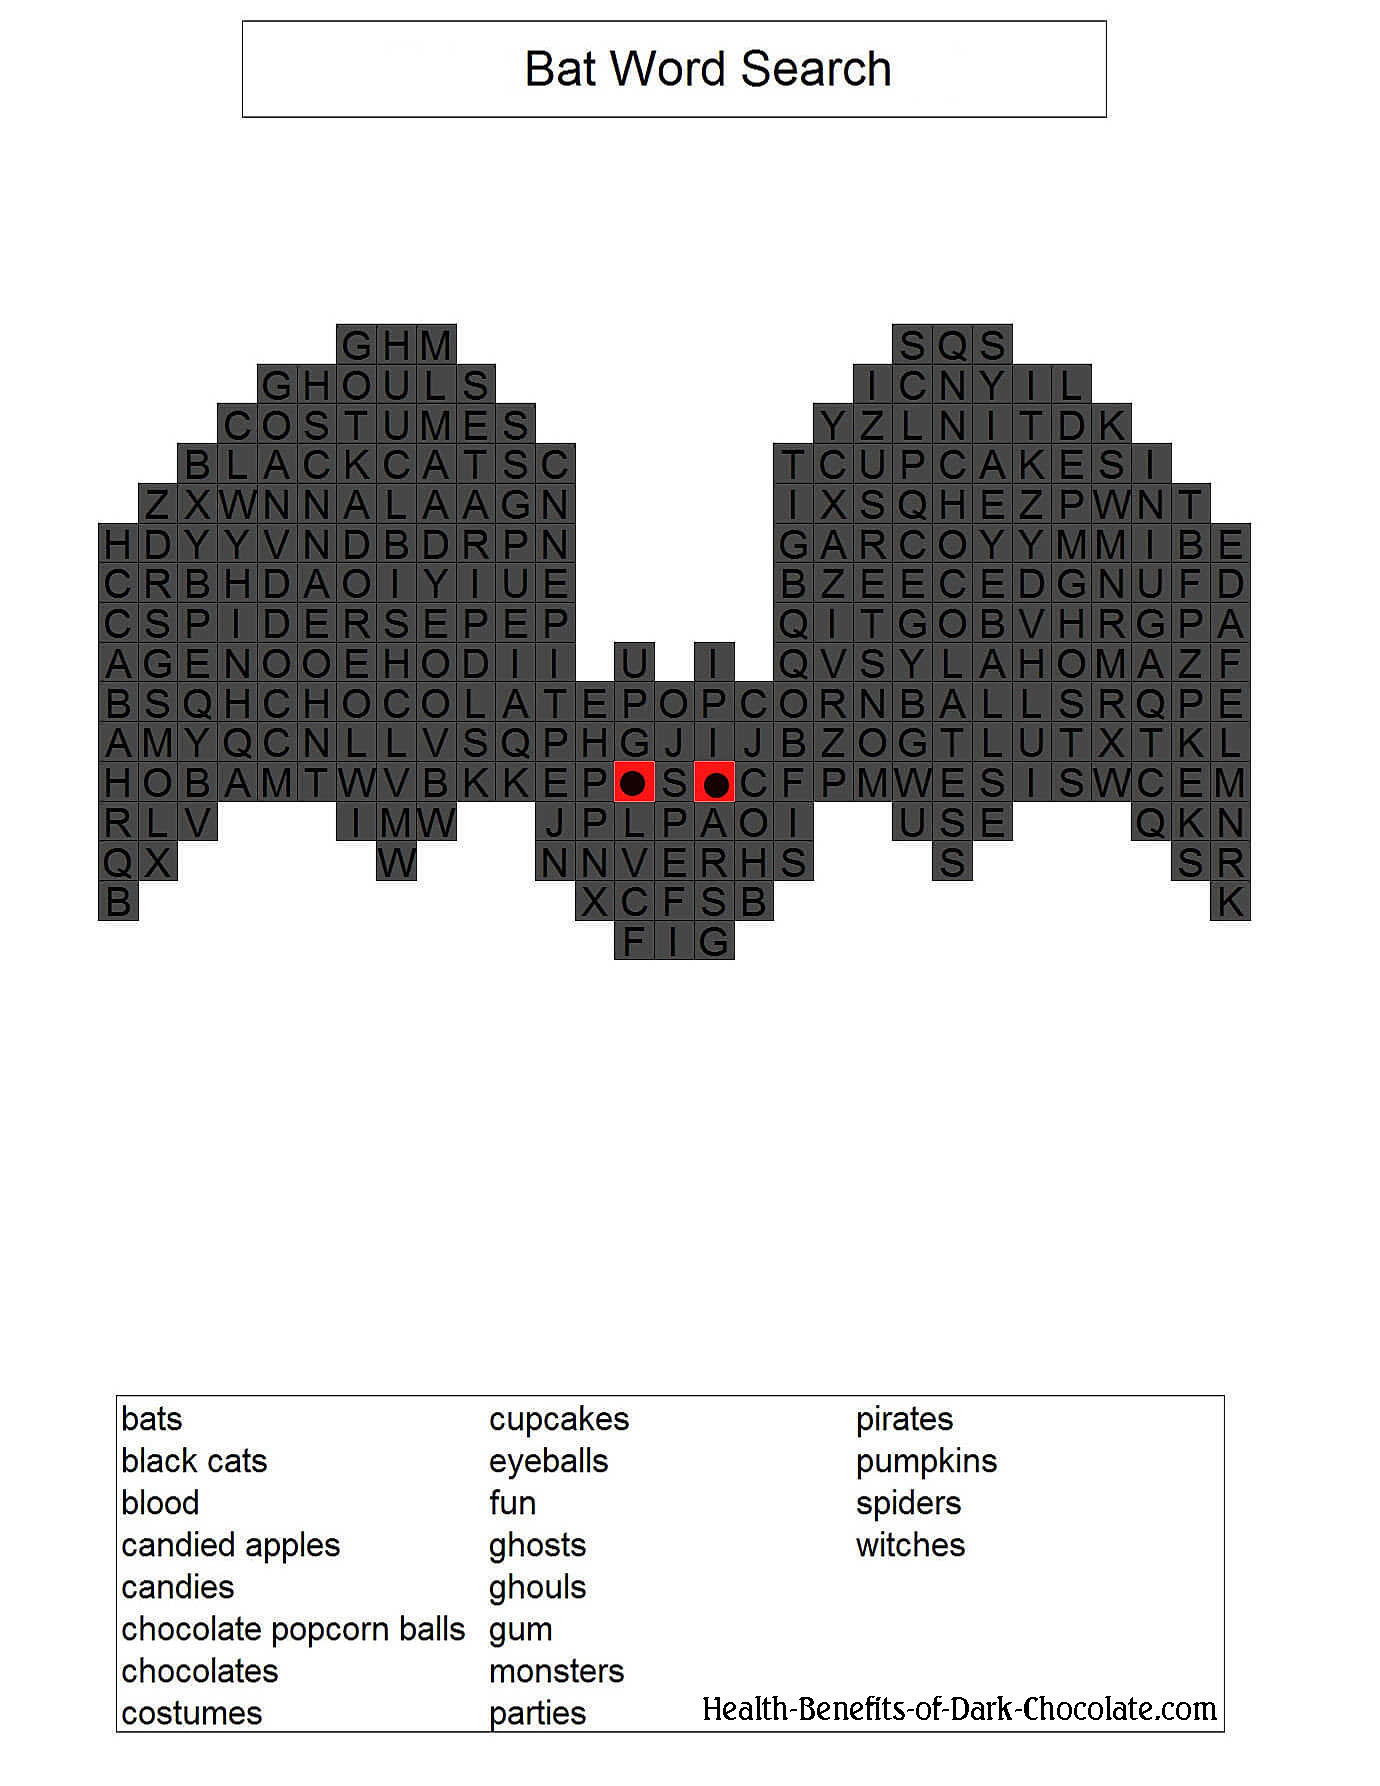 Bat shaped word search.